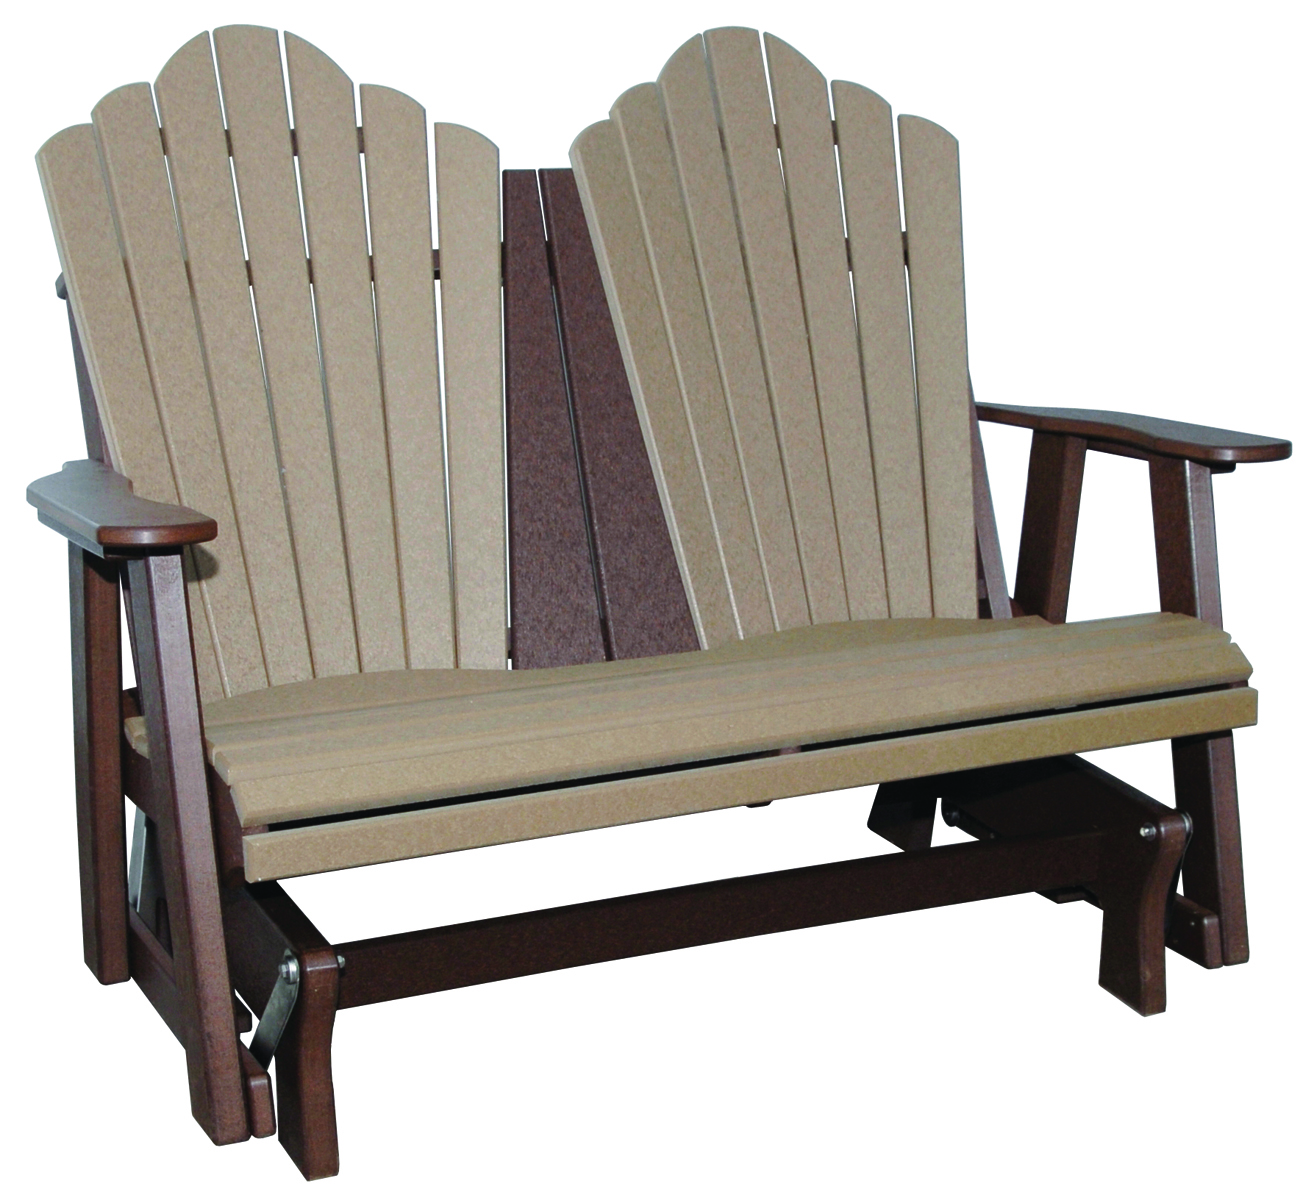 double gliders for patio use in summer